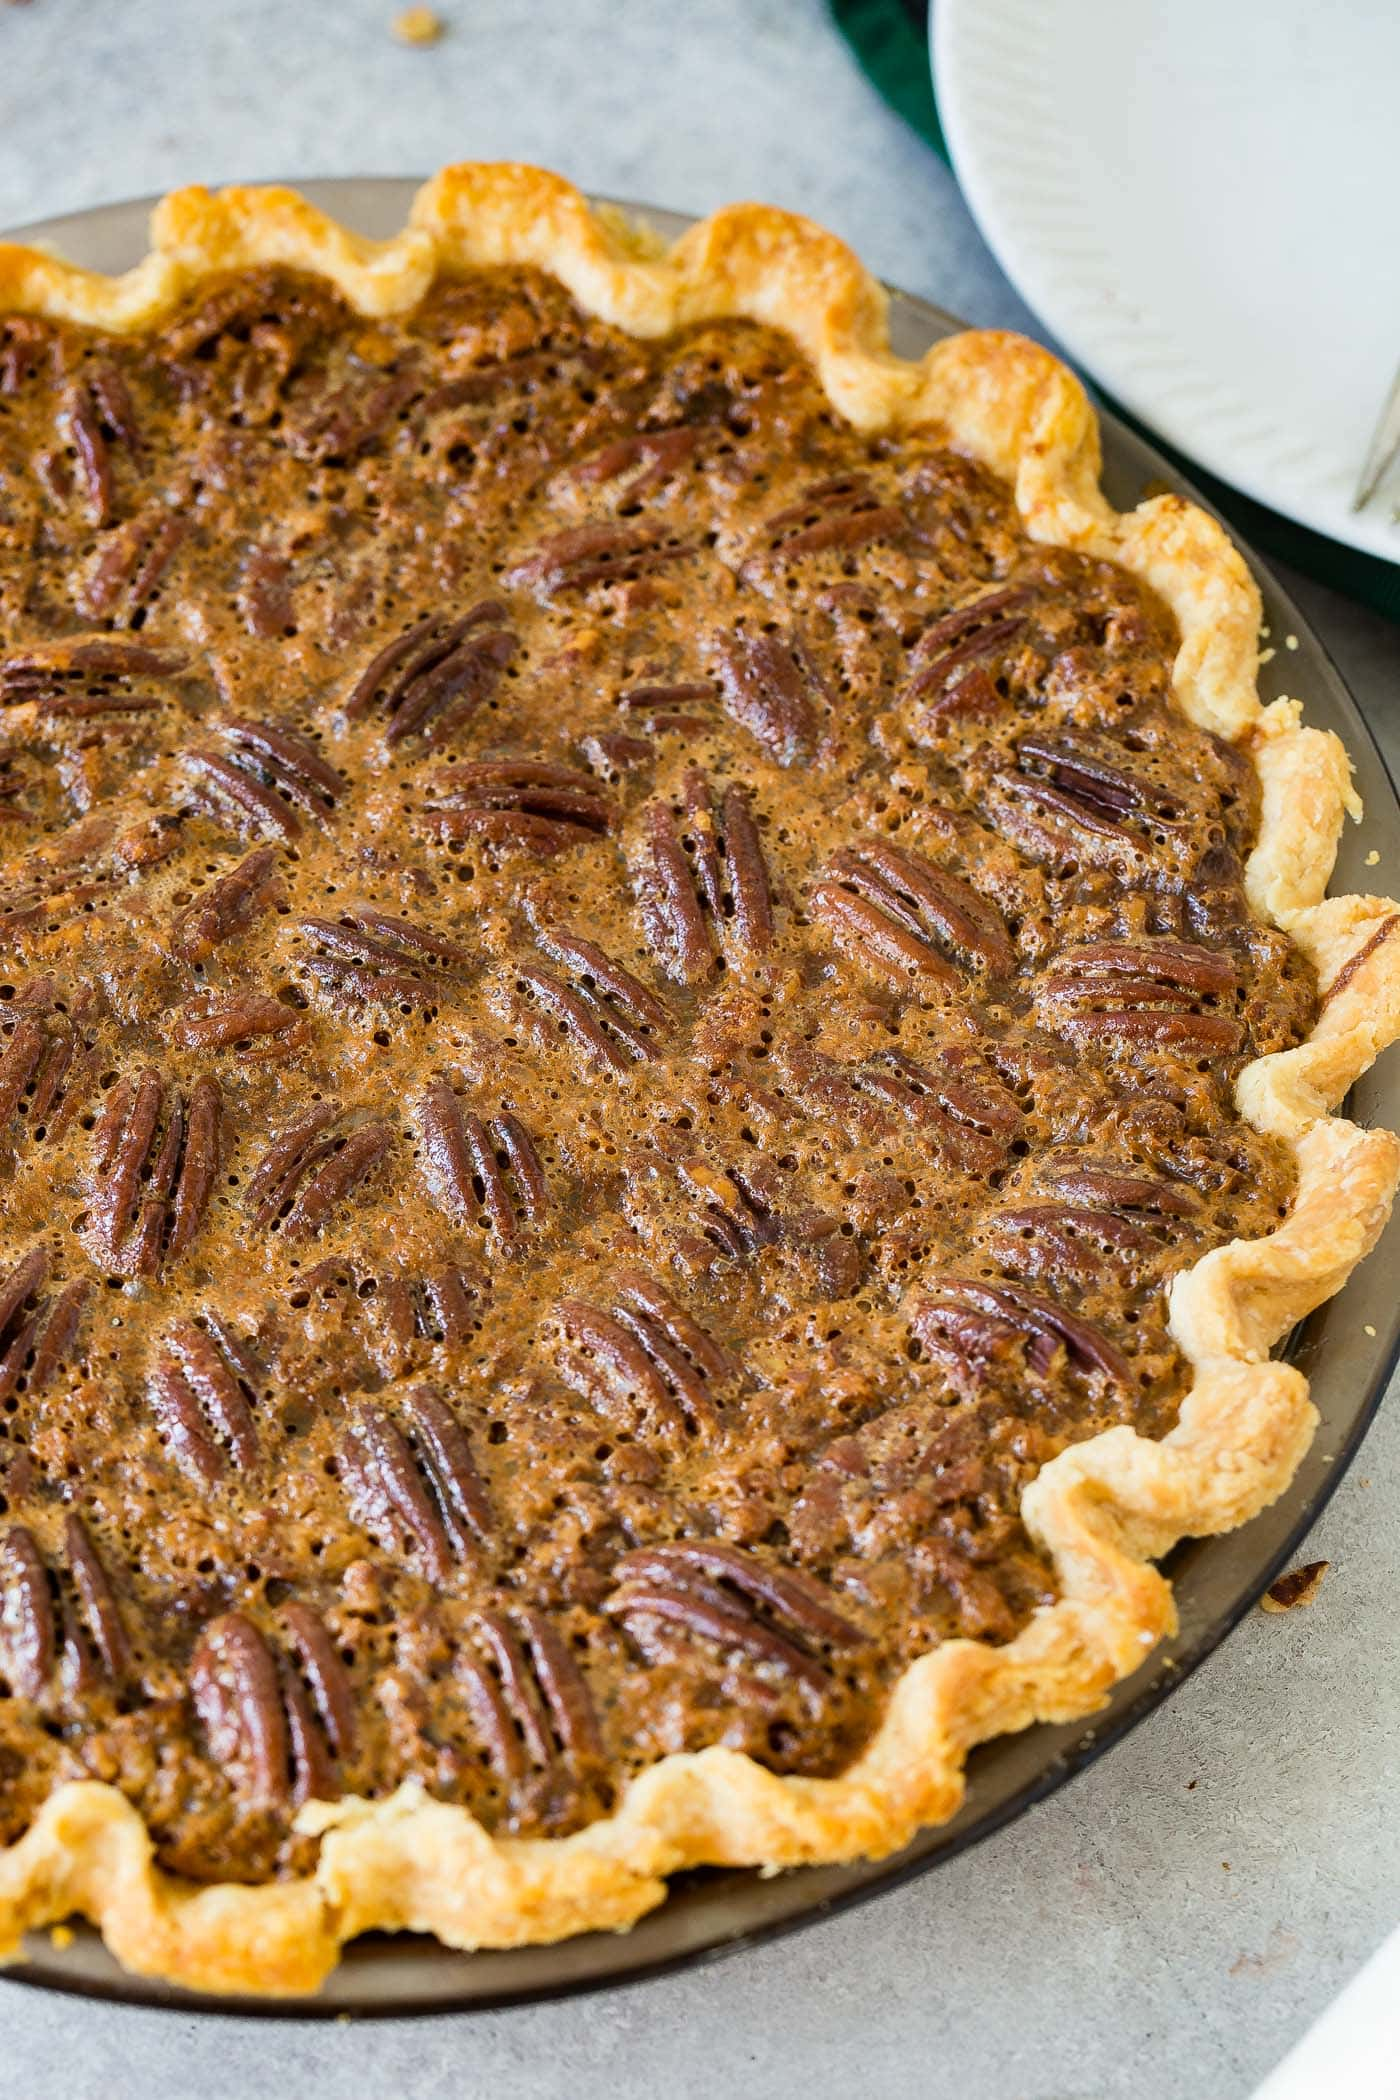 A photo of a whole pecan pie perfectly baked.